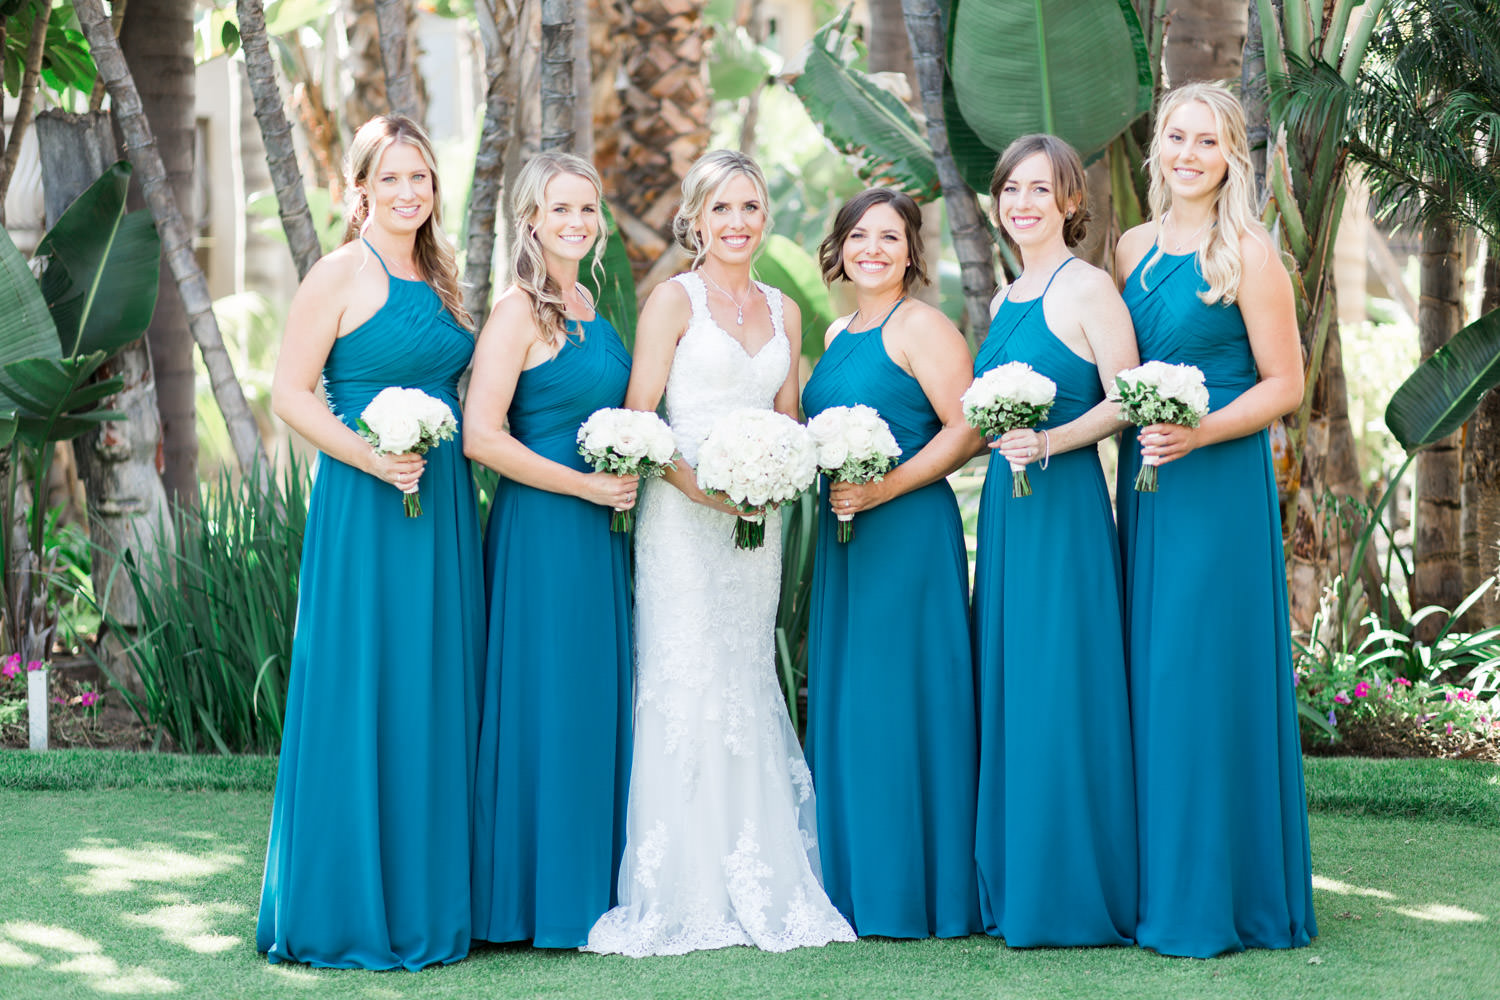 Bridesmaids in turquoise gowns, Cavin Elizabeth Photography